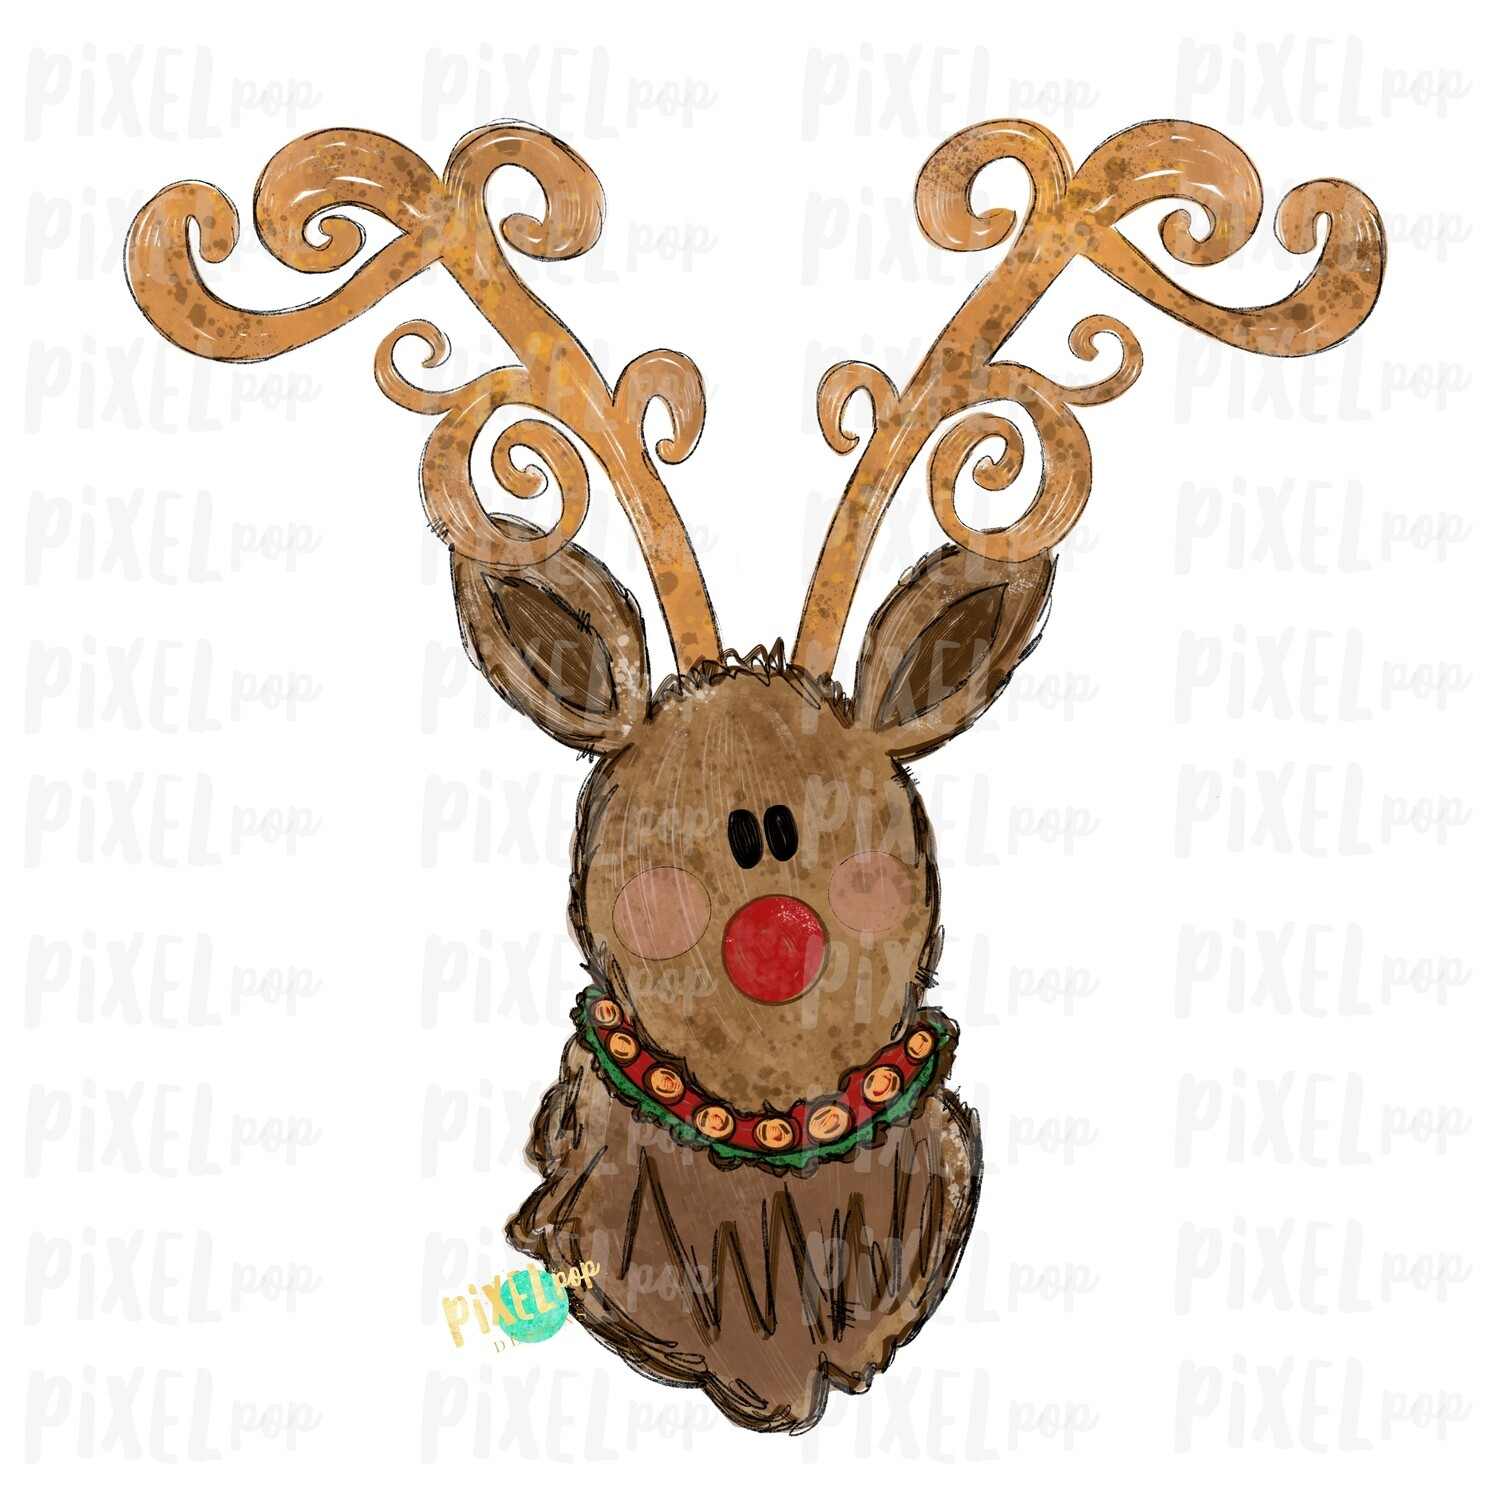 Reindeer Christmas Decorative Antlers No Bow (BOY) Sublimation PNG | Reindeer Art | Digital Download | Printable Artwork | Clip Art